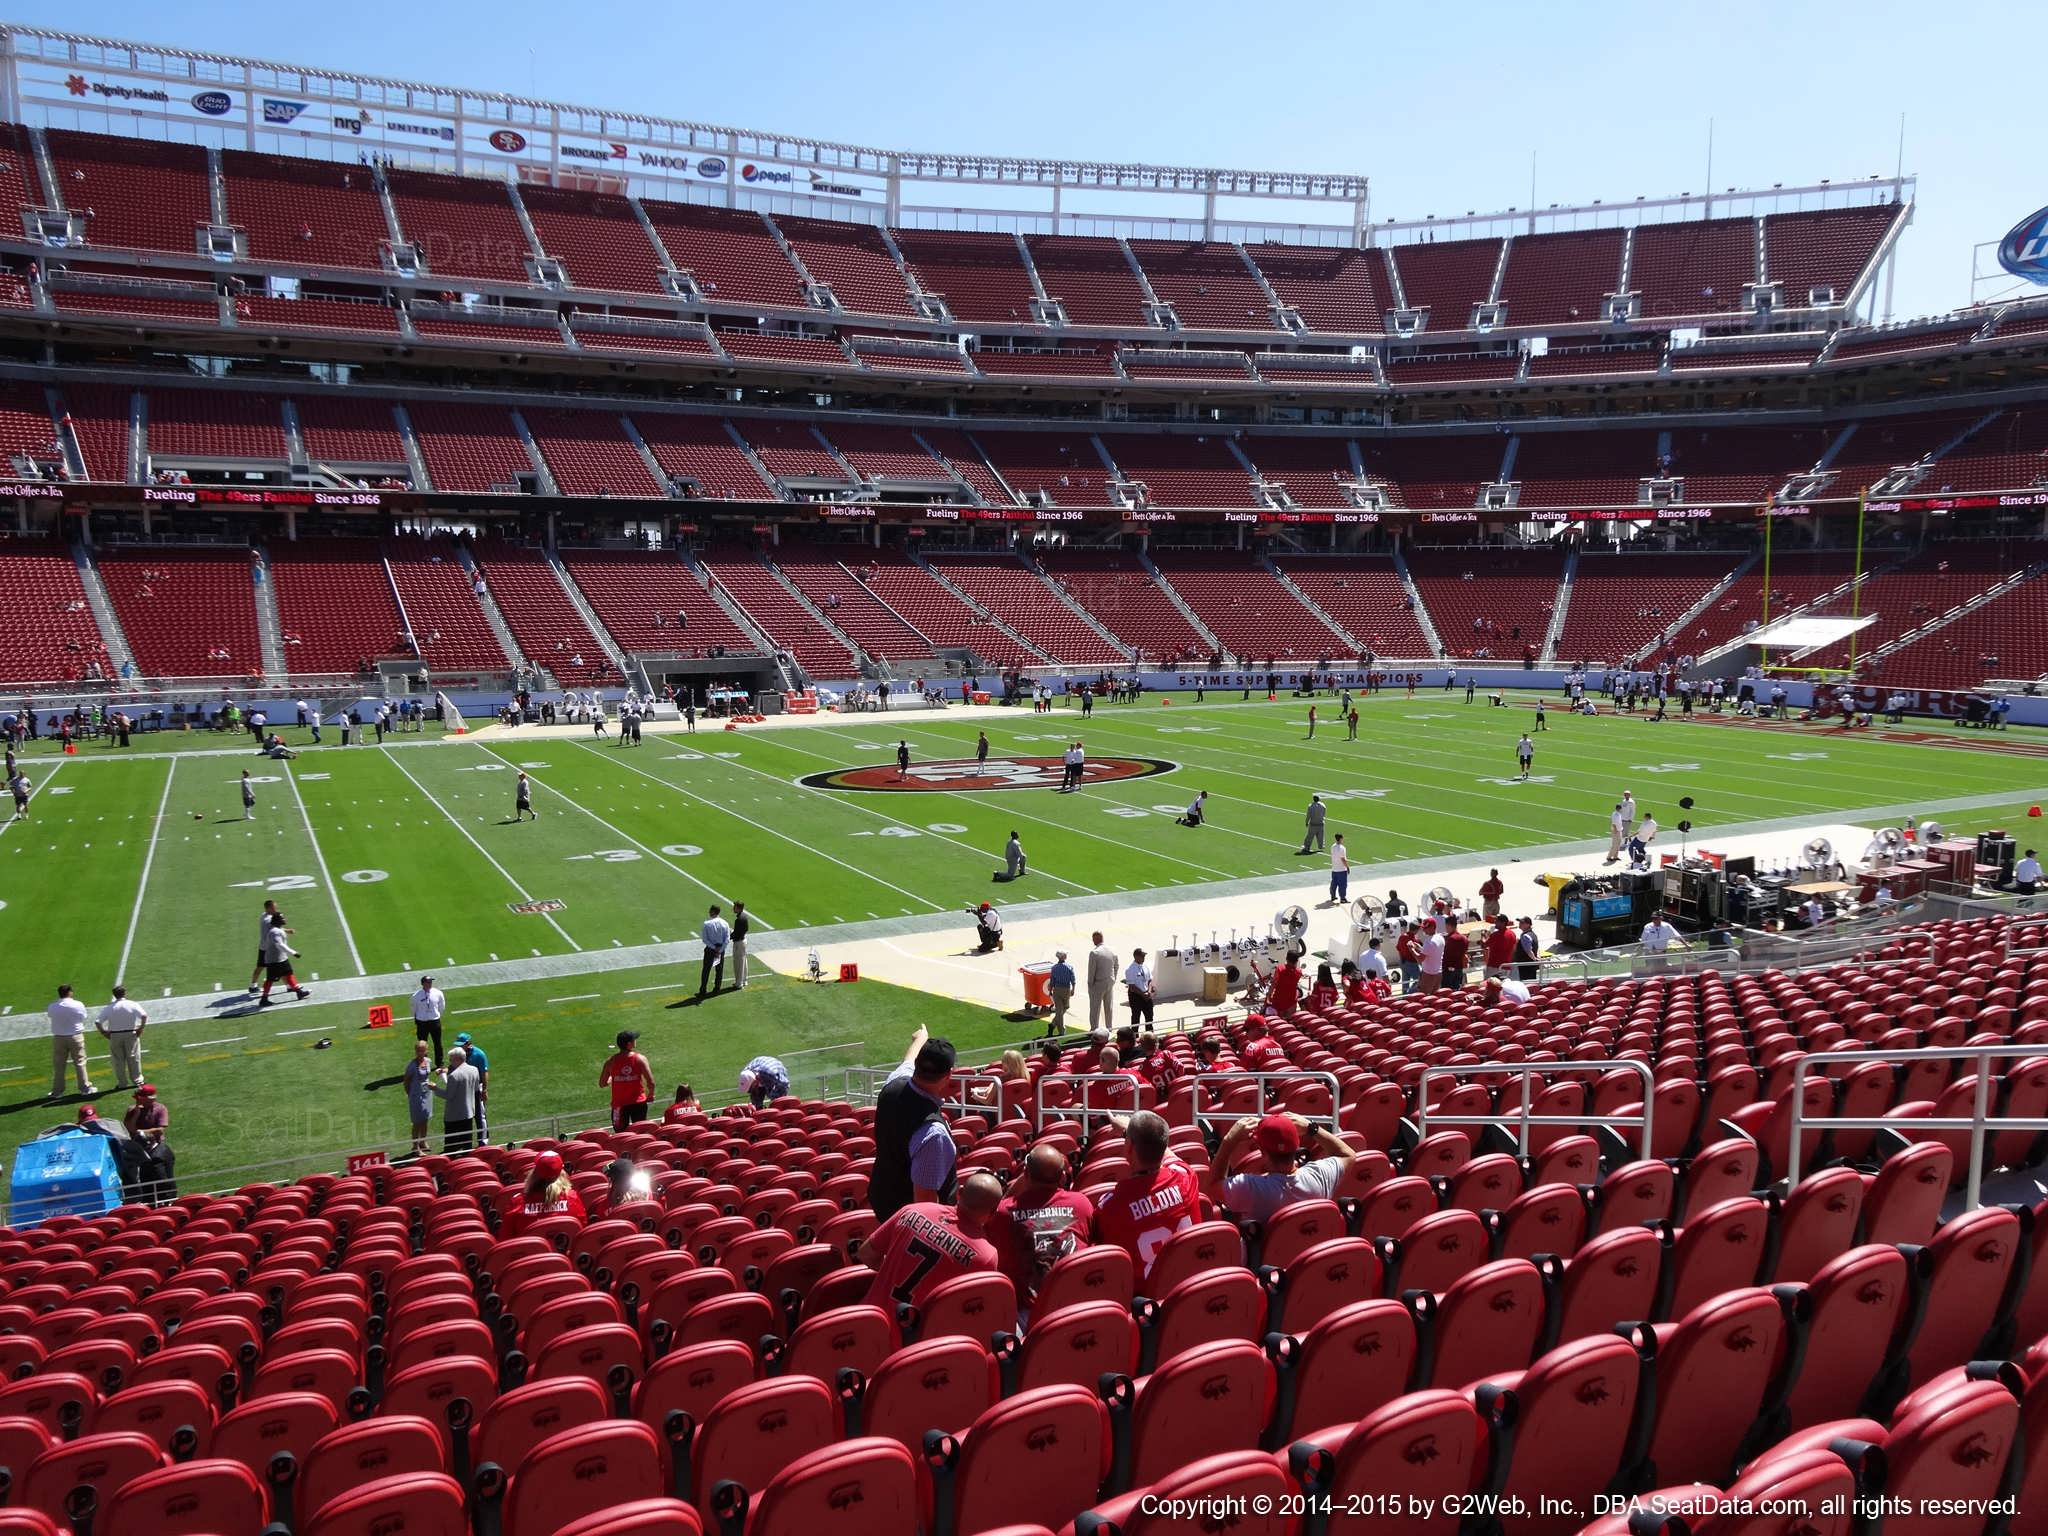 Seat view from section 141 at Levi's Stadium, home of the San Francisco 49ers